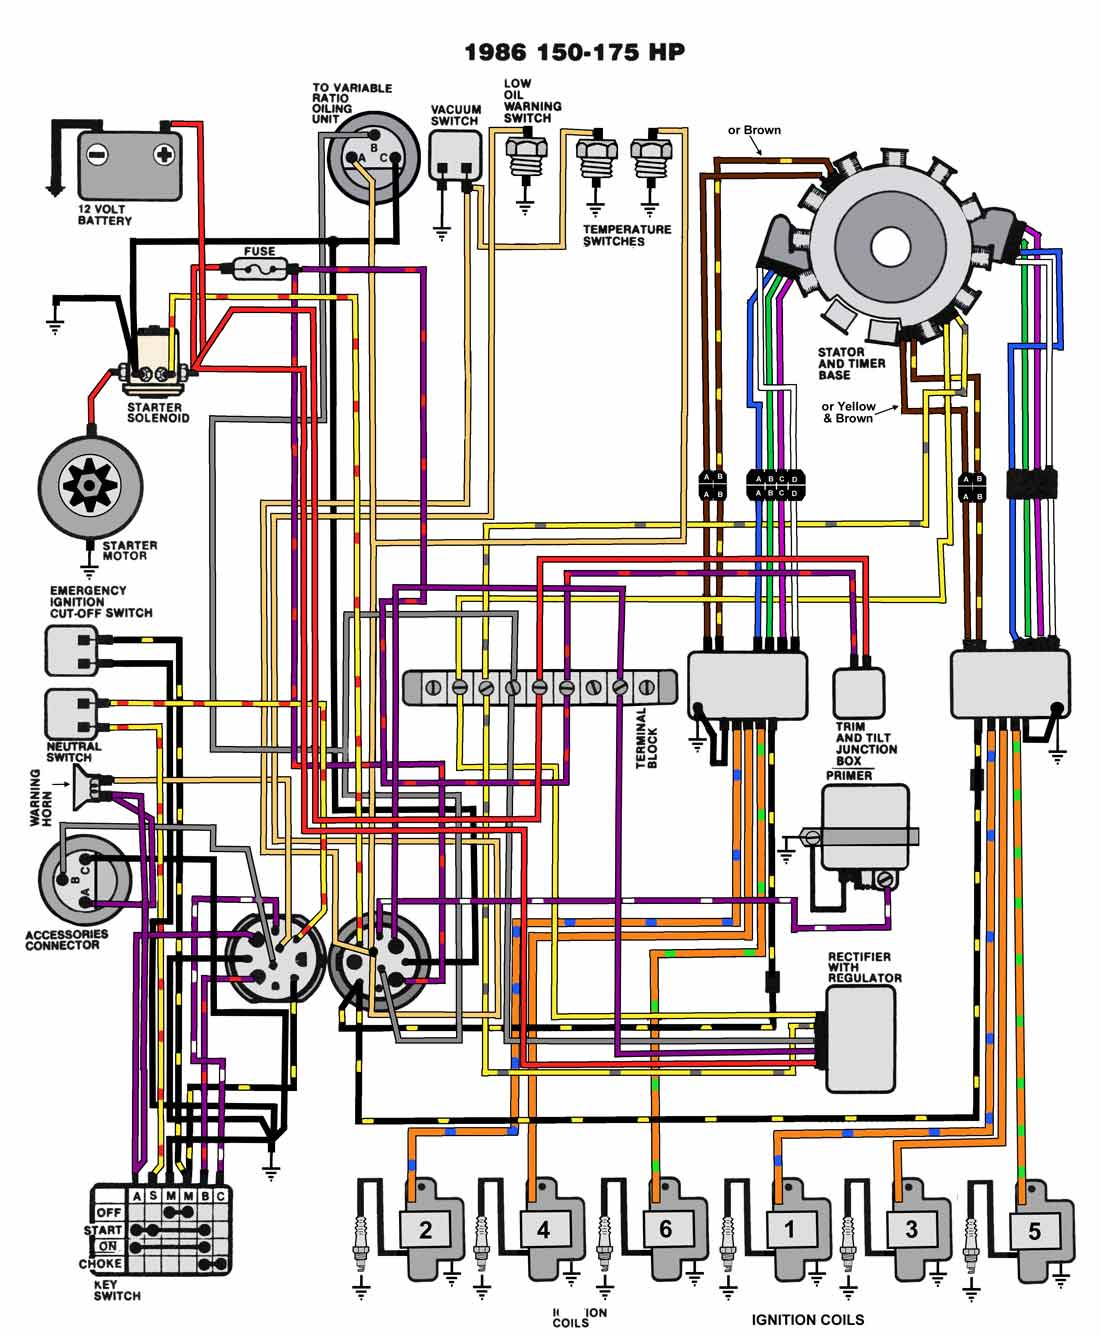 1986_150_175 maxrules wiring diagram wiring color standards \u2022 wiring diagrams 35 Evinrude Wiring Diagram at fashall.co